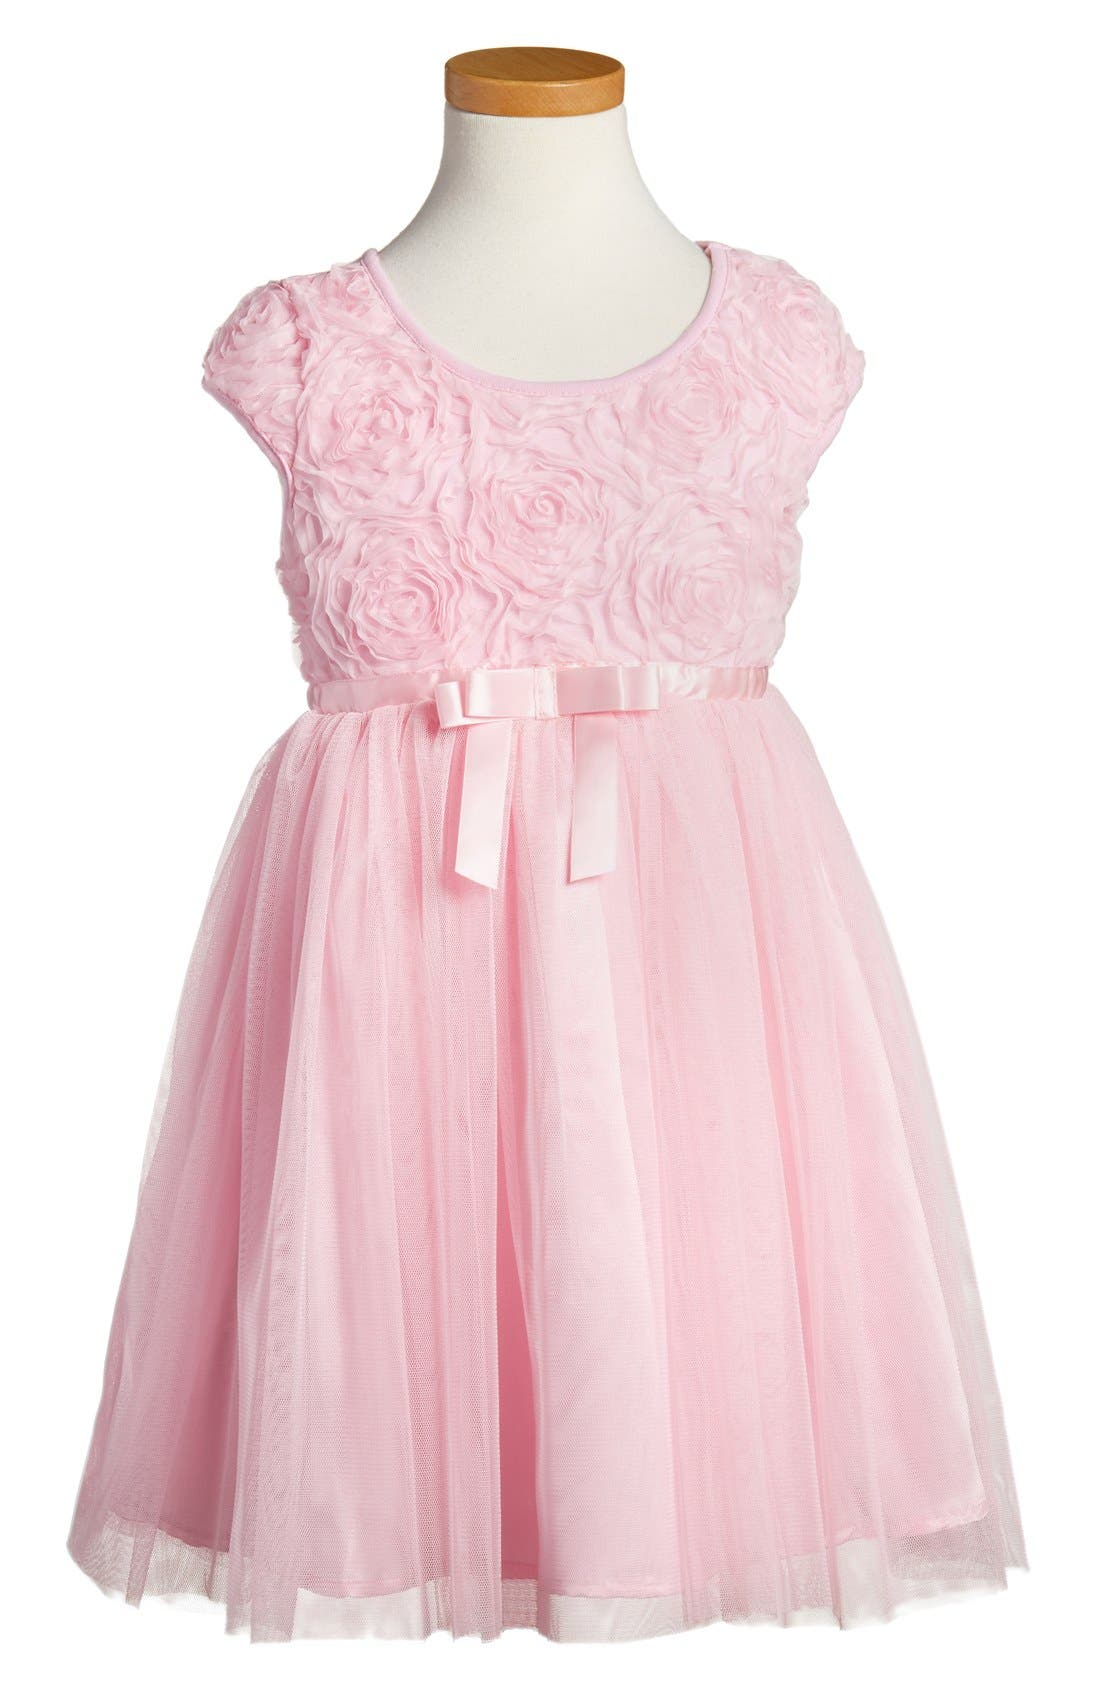 Popatu Ribbon Rosette Tulle Dress (Little Girls & Big Girls)